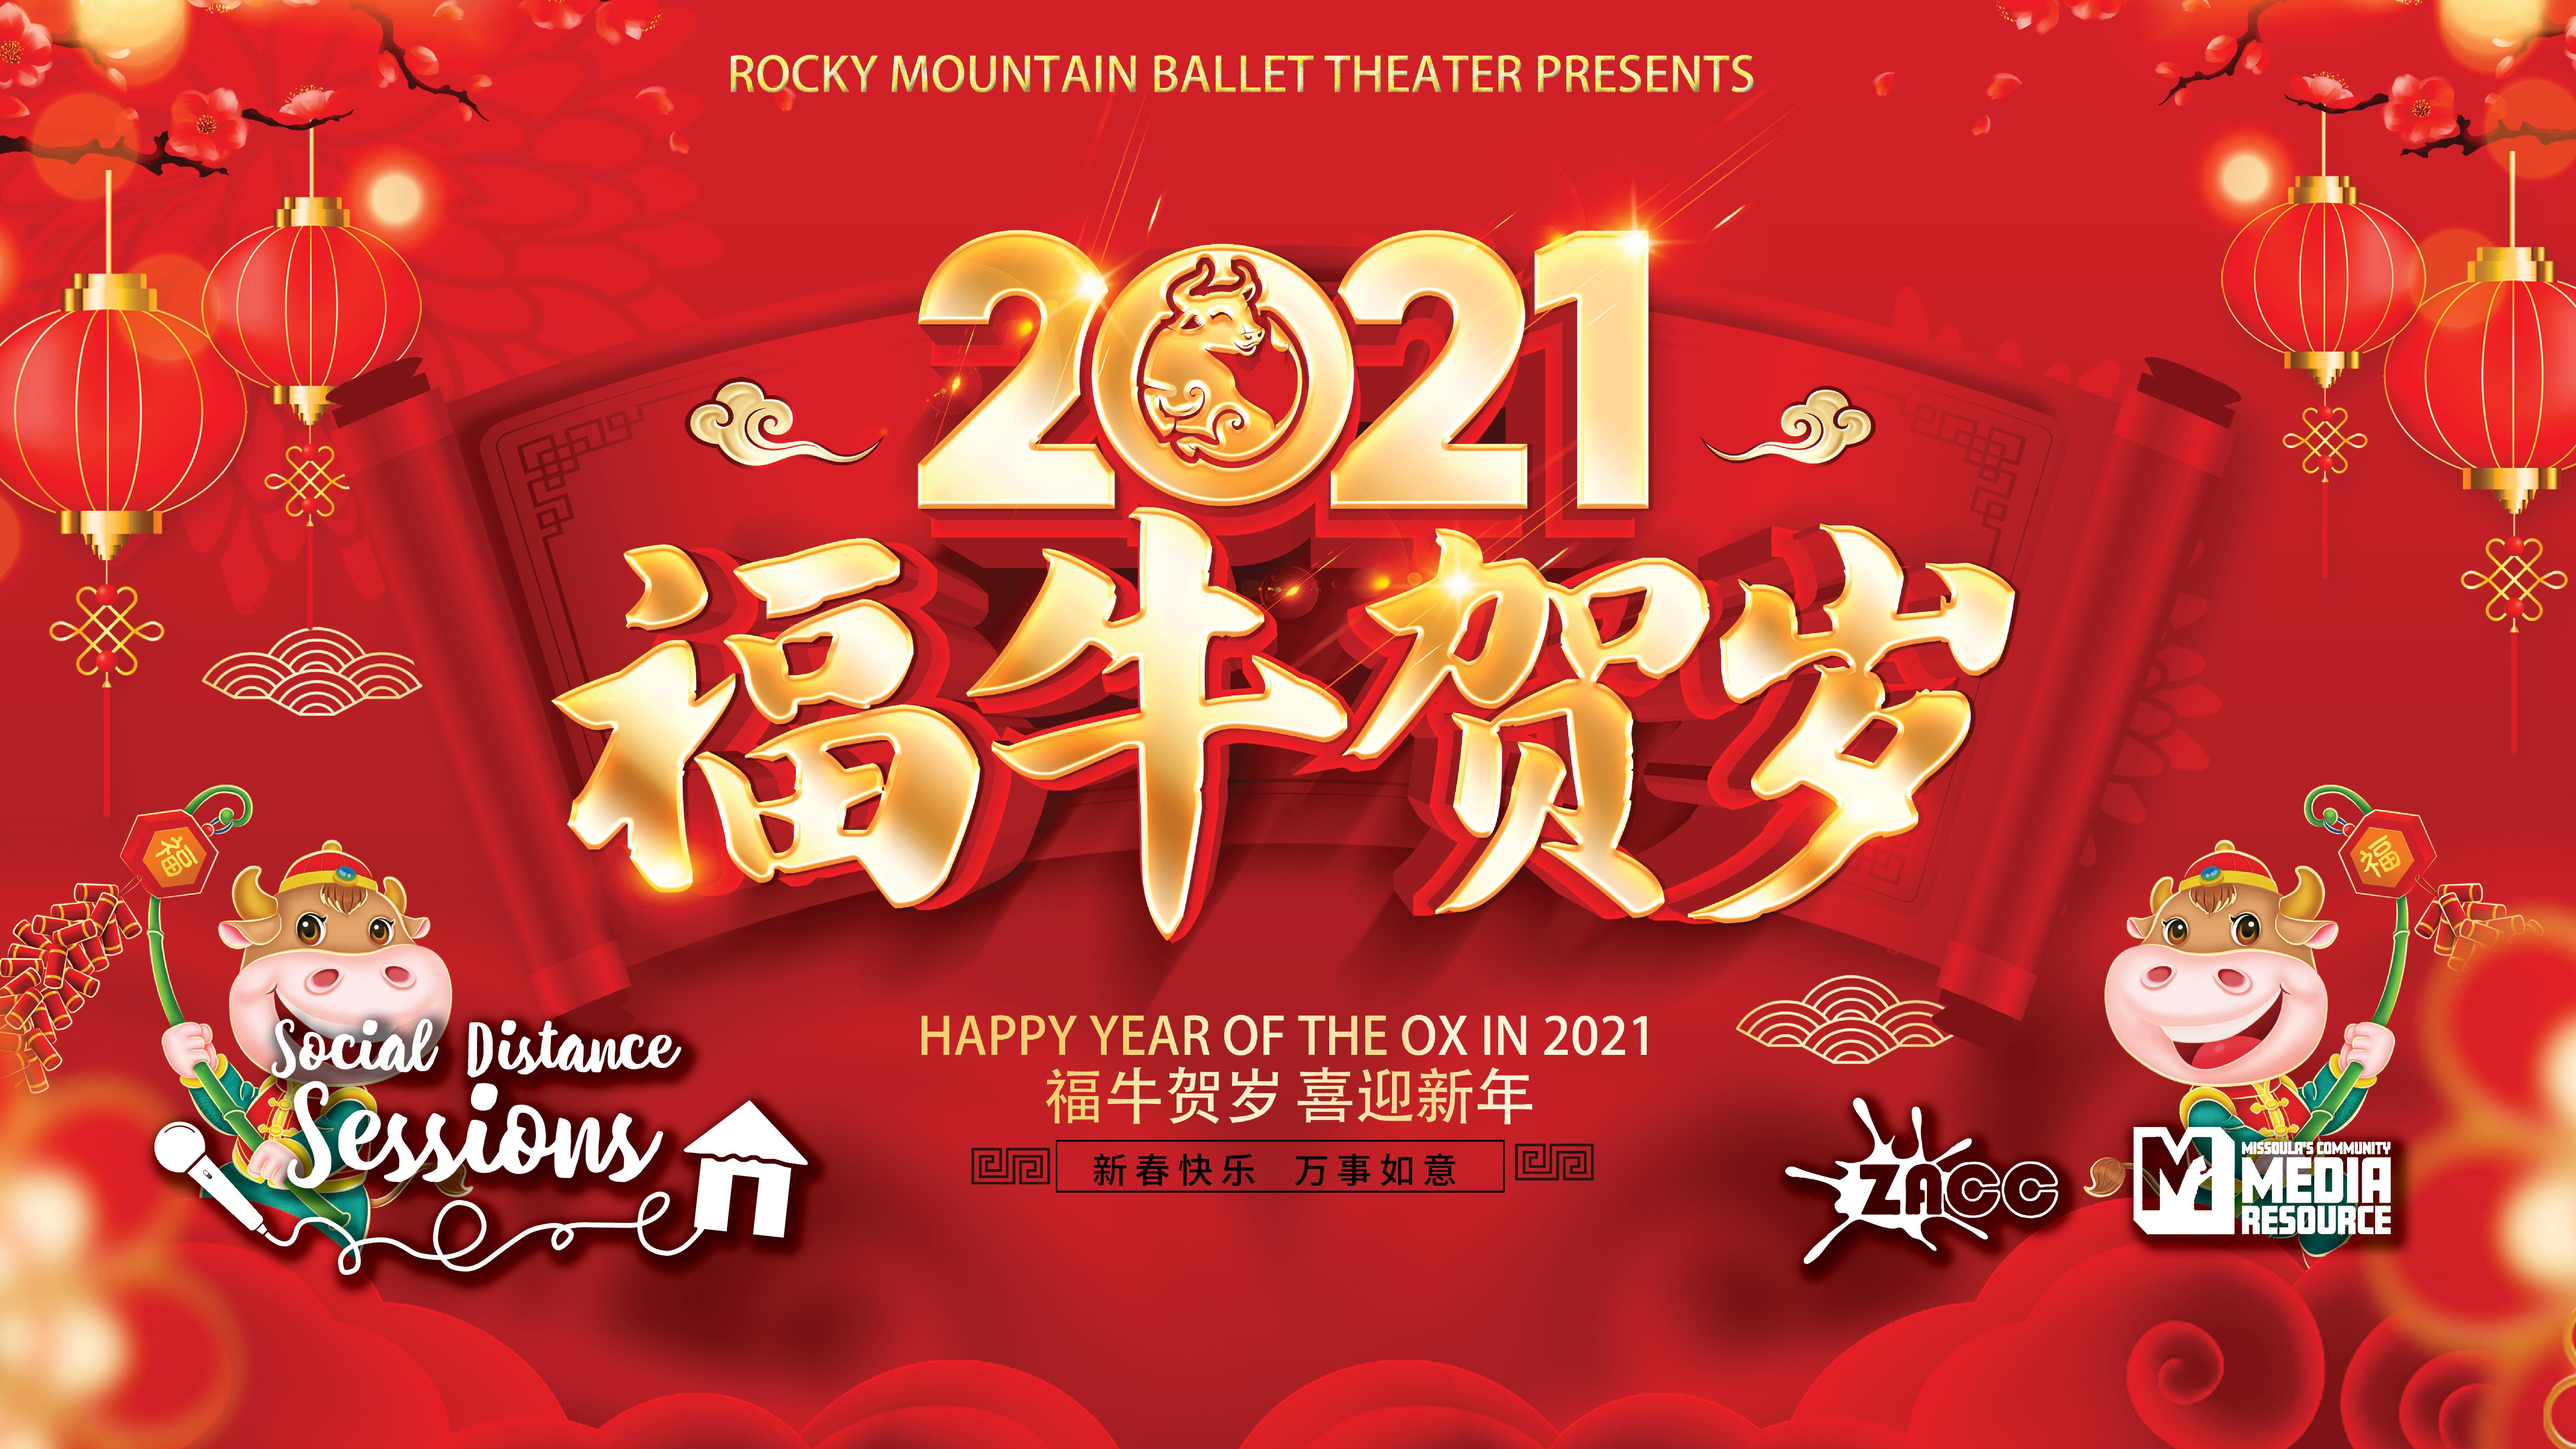 Social Distance Sessions: Rocky Mountain Ballet Theatre presents a Chinese New Year Celebration